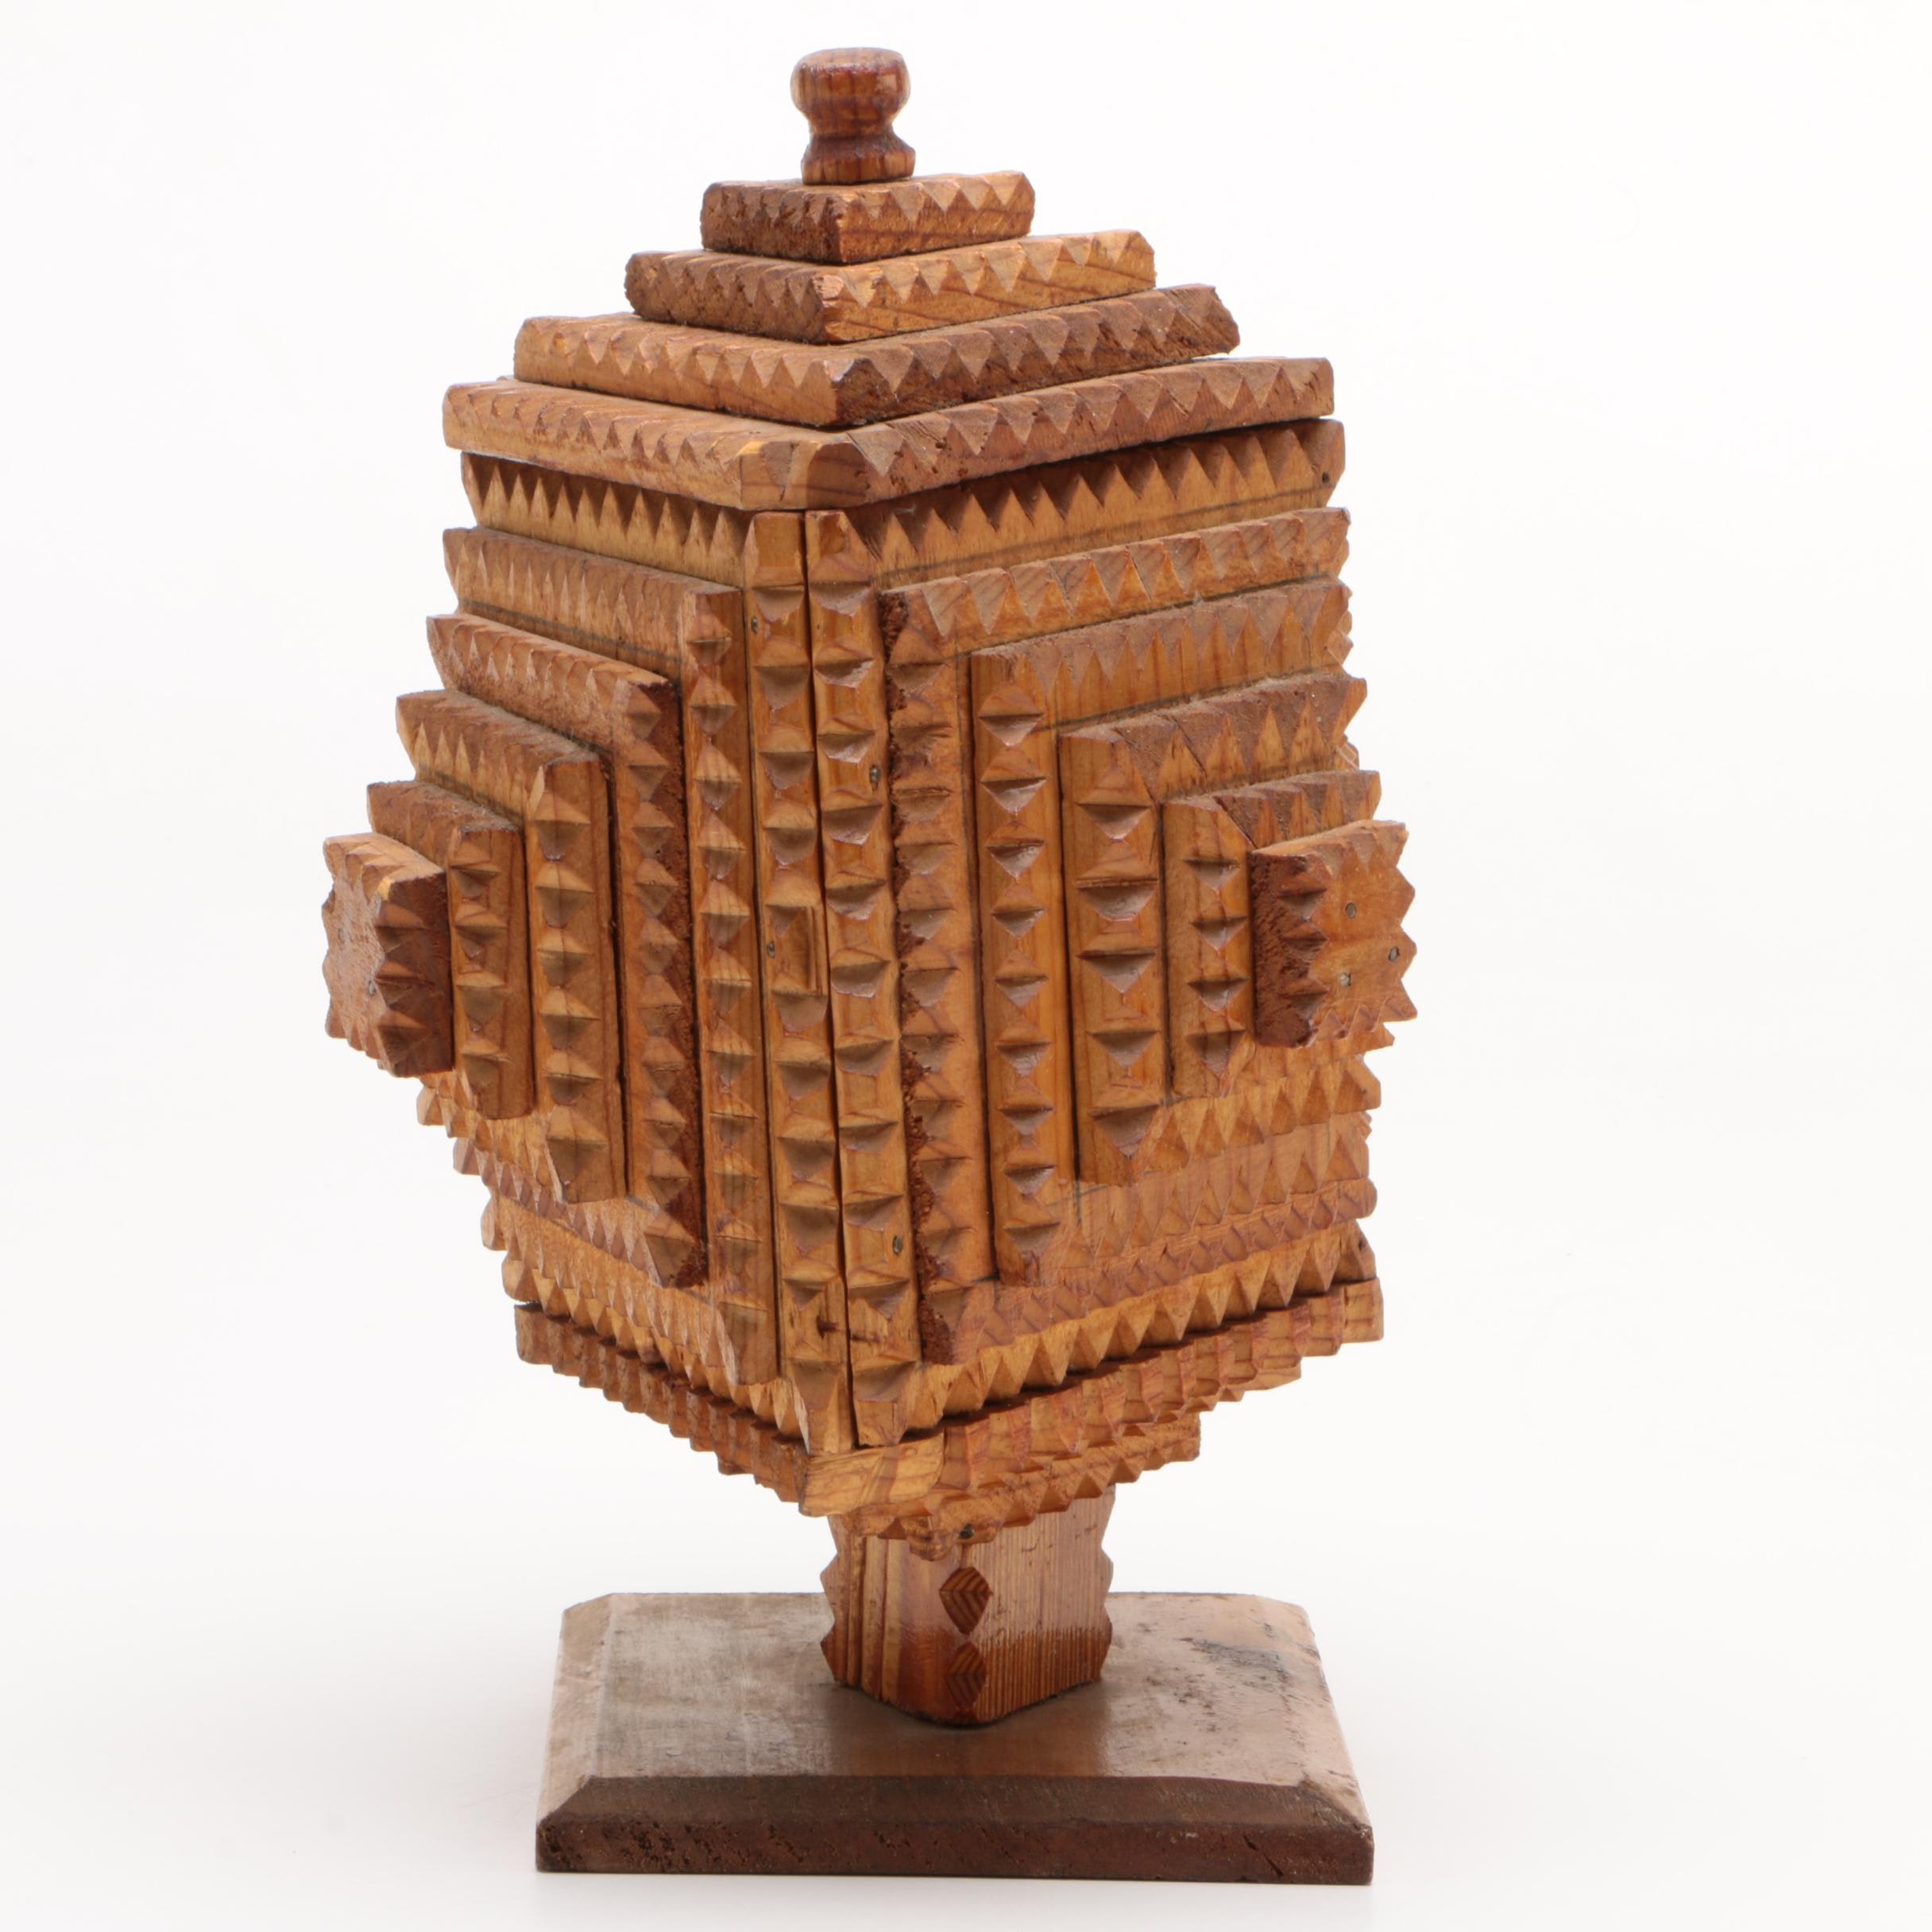 American Tramp Art Wooden Urn, Late 19th/ Early 20th Century